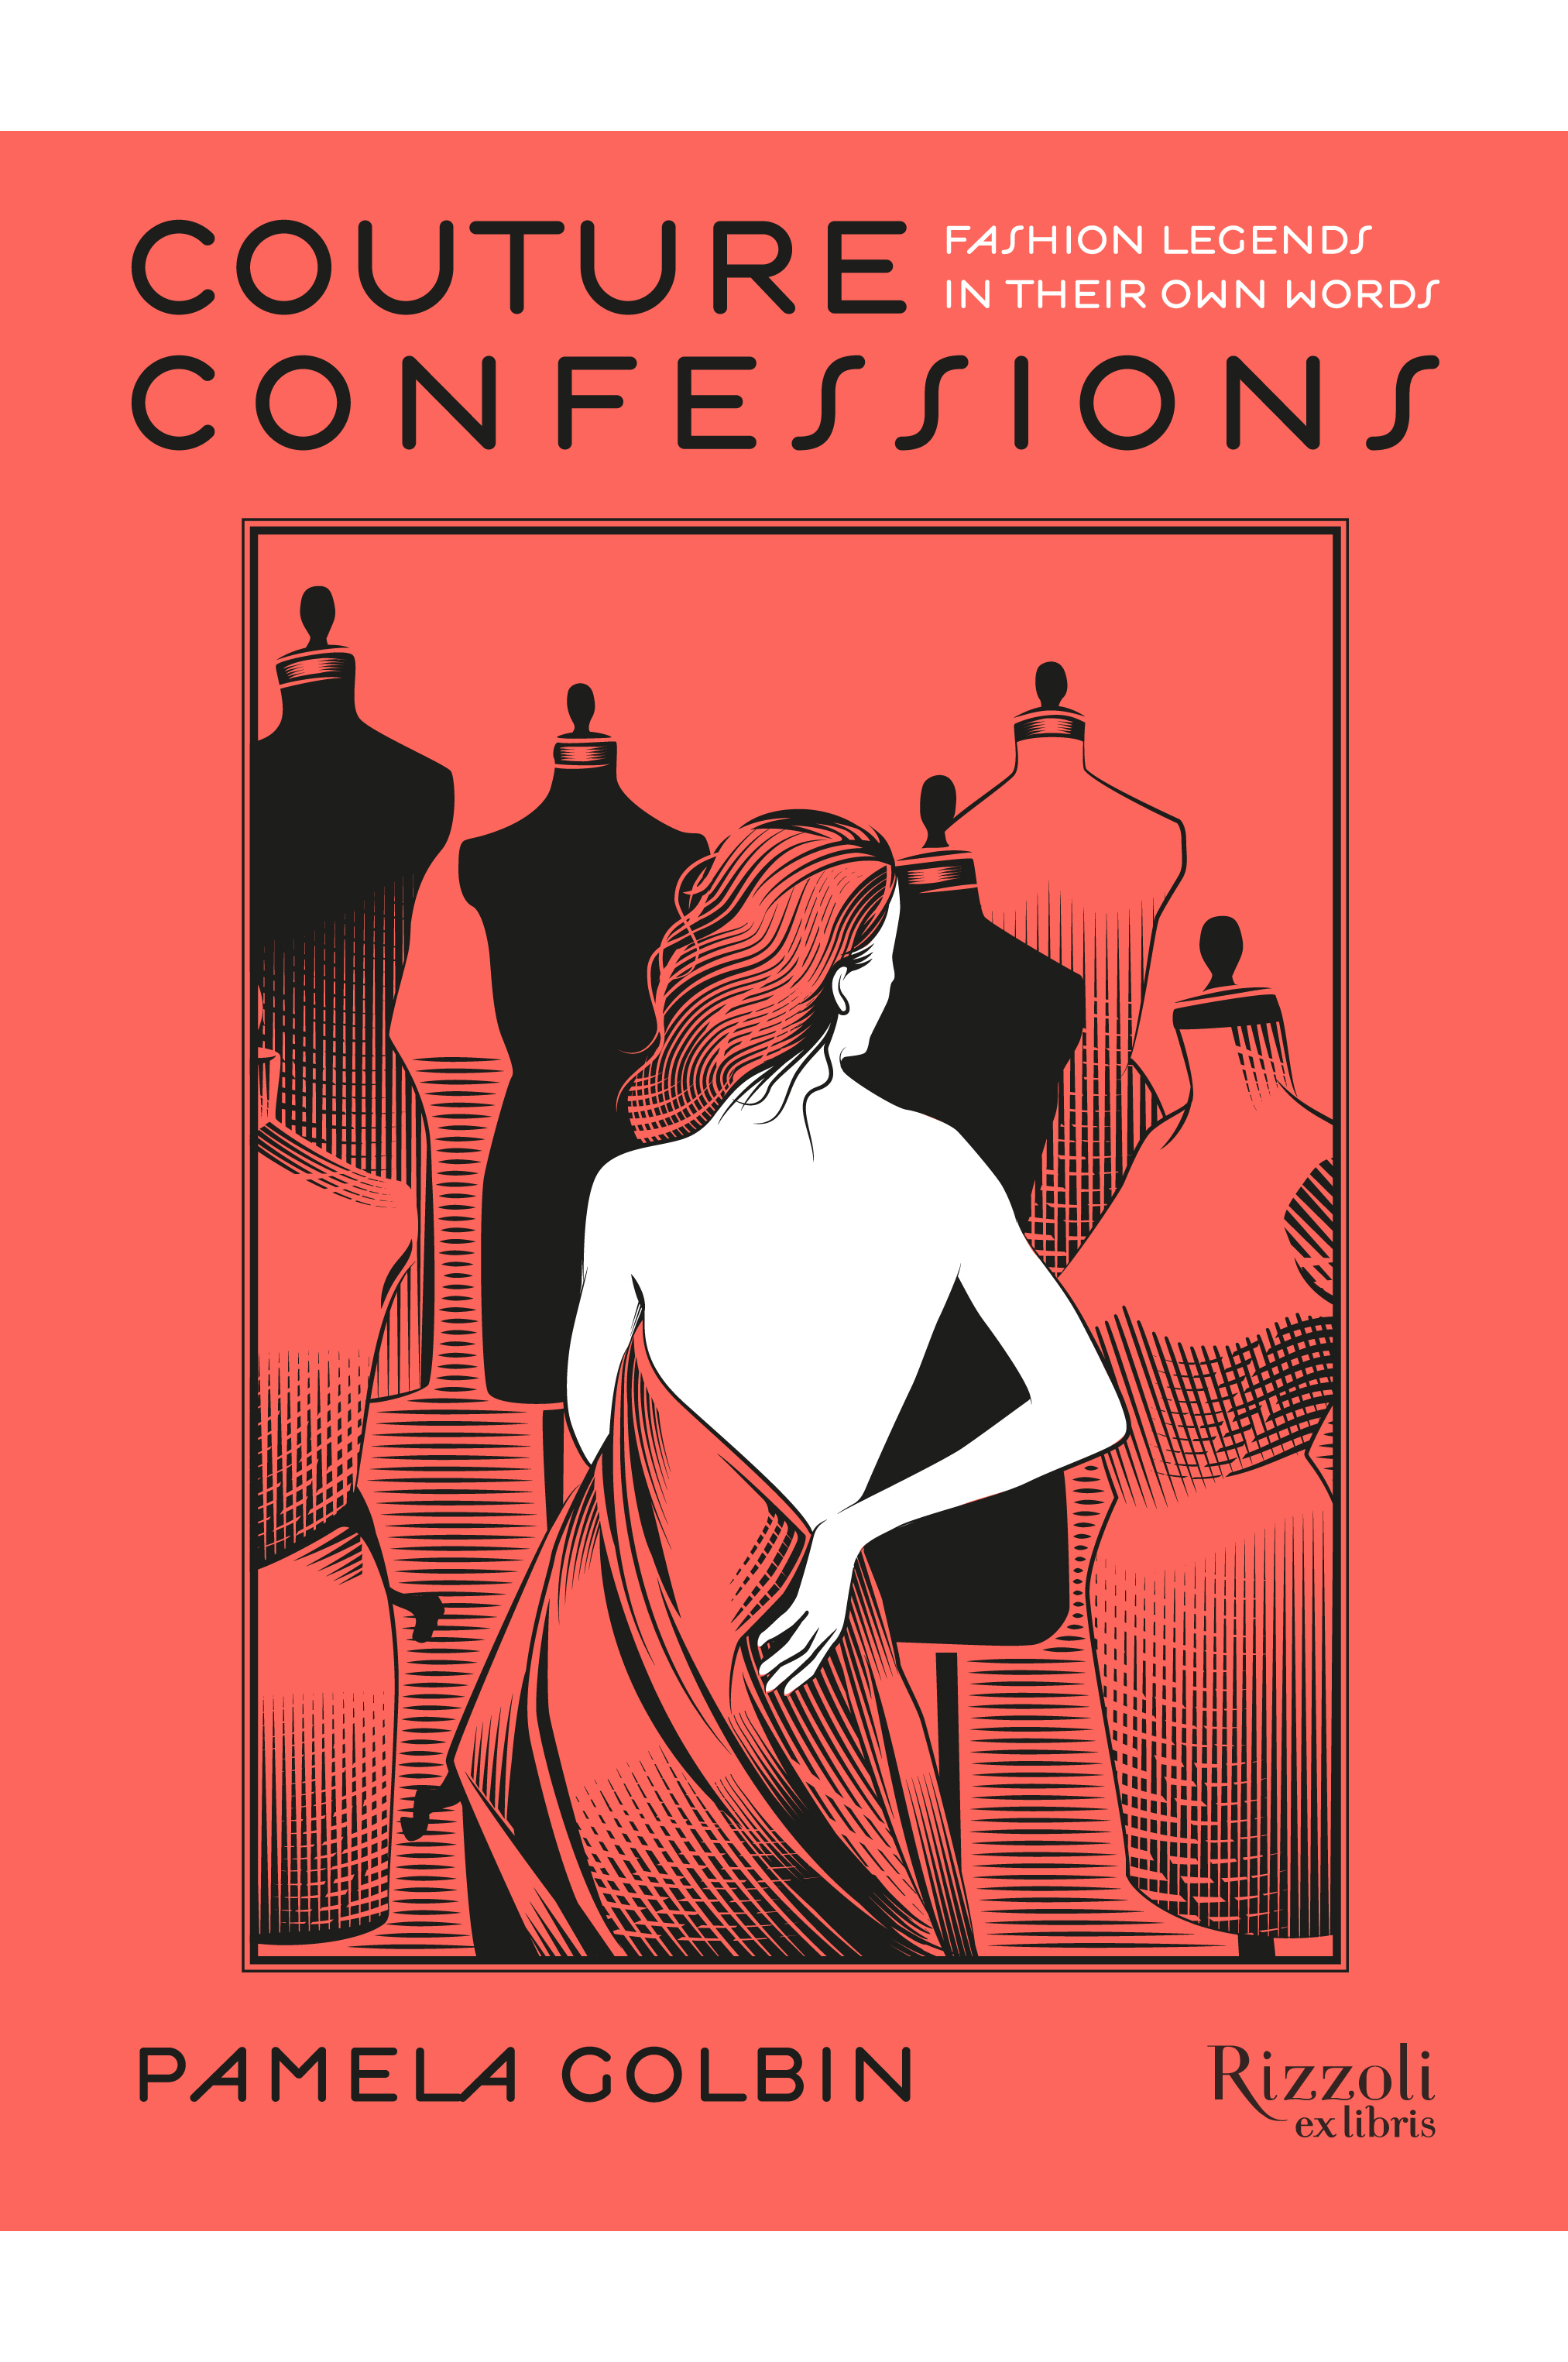 Couture Confessions by Pamela Golbin